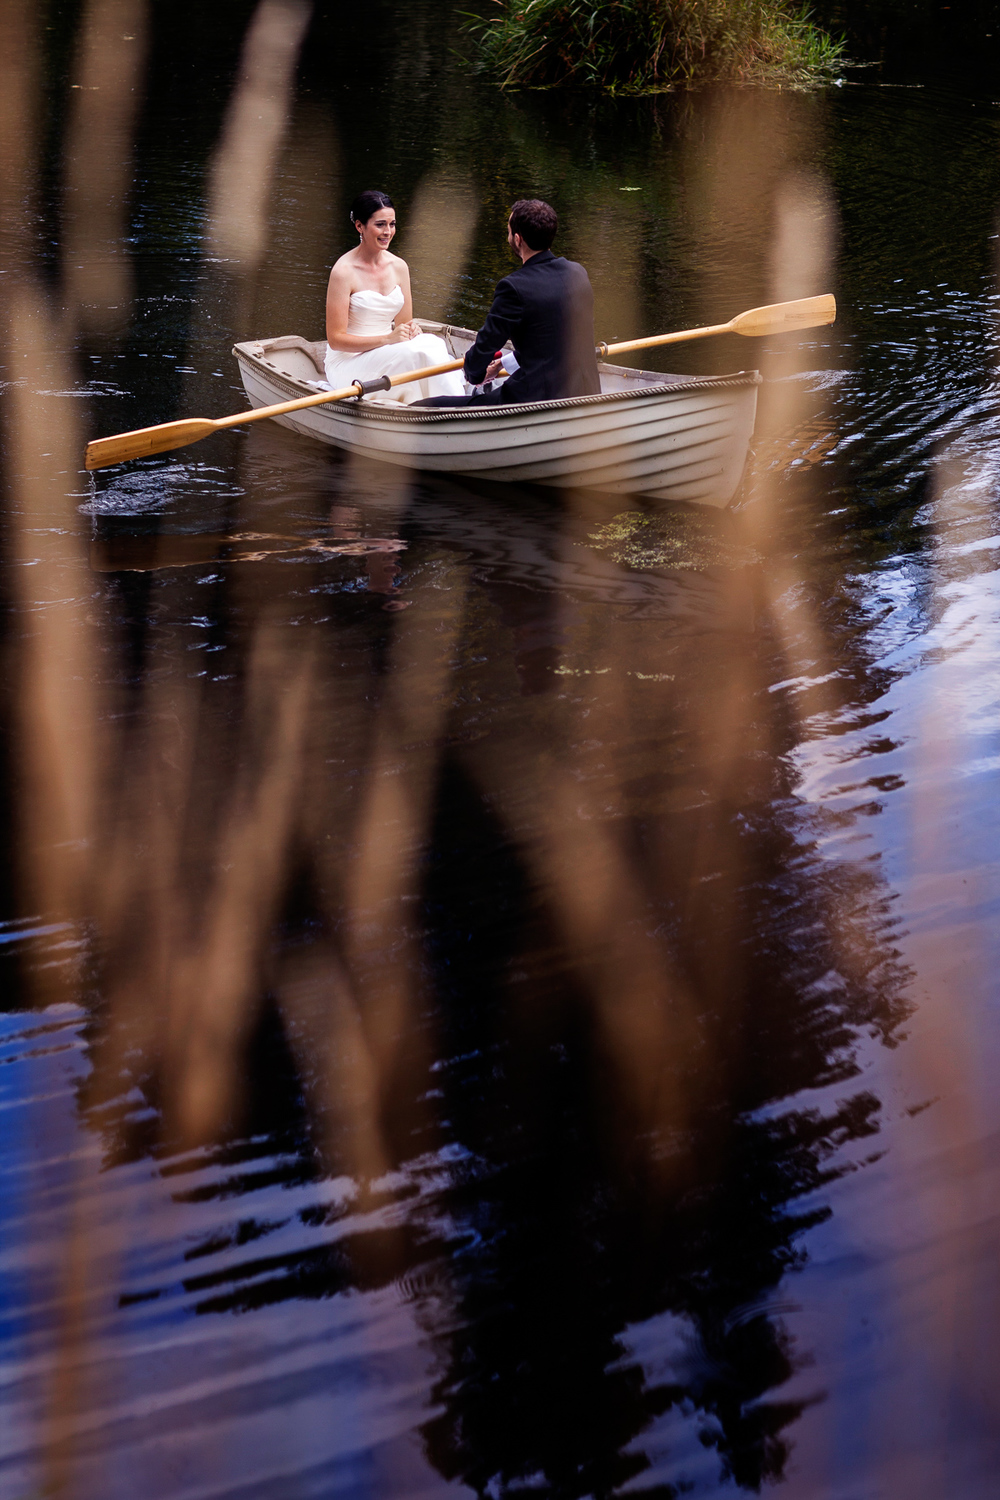 0049_olivia&Matt-outdoor-wedding-brandon-patoc-photography.jpg